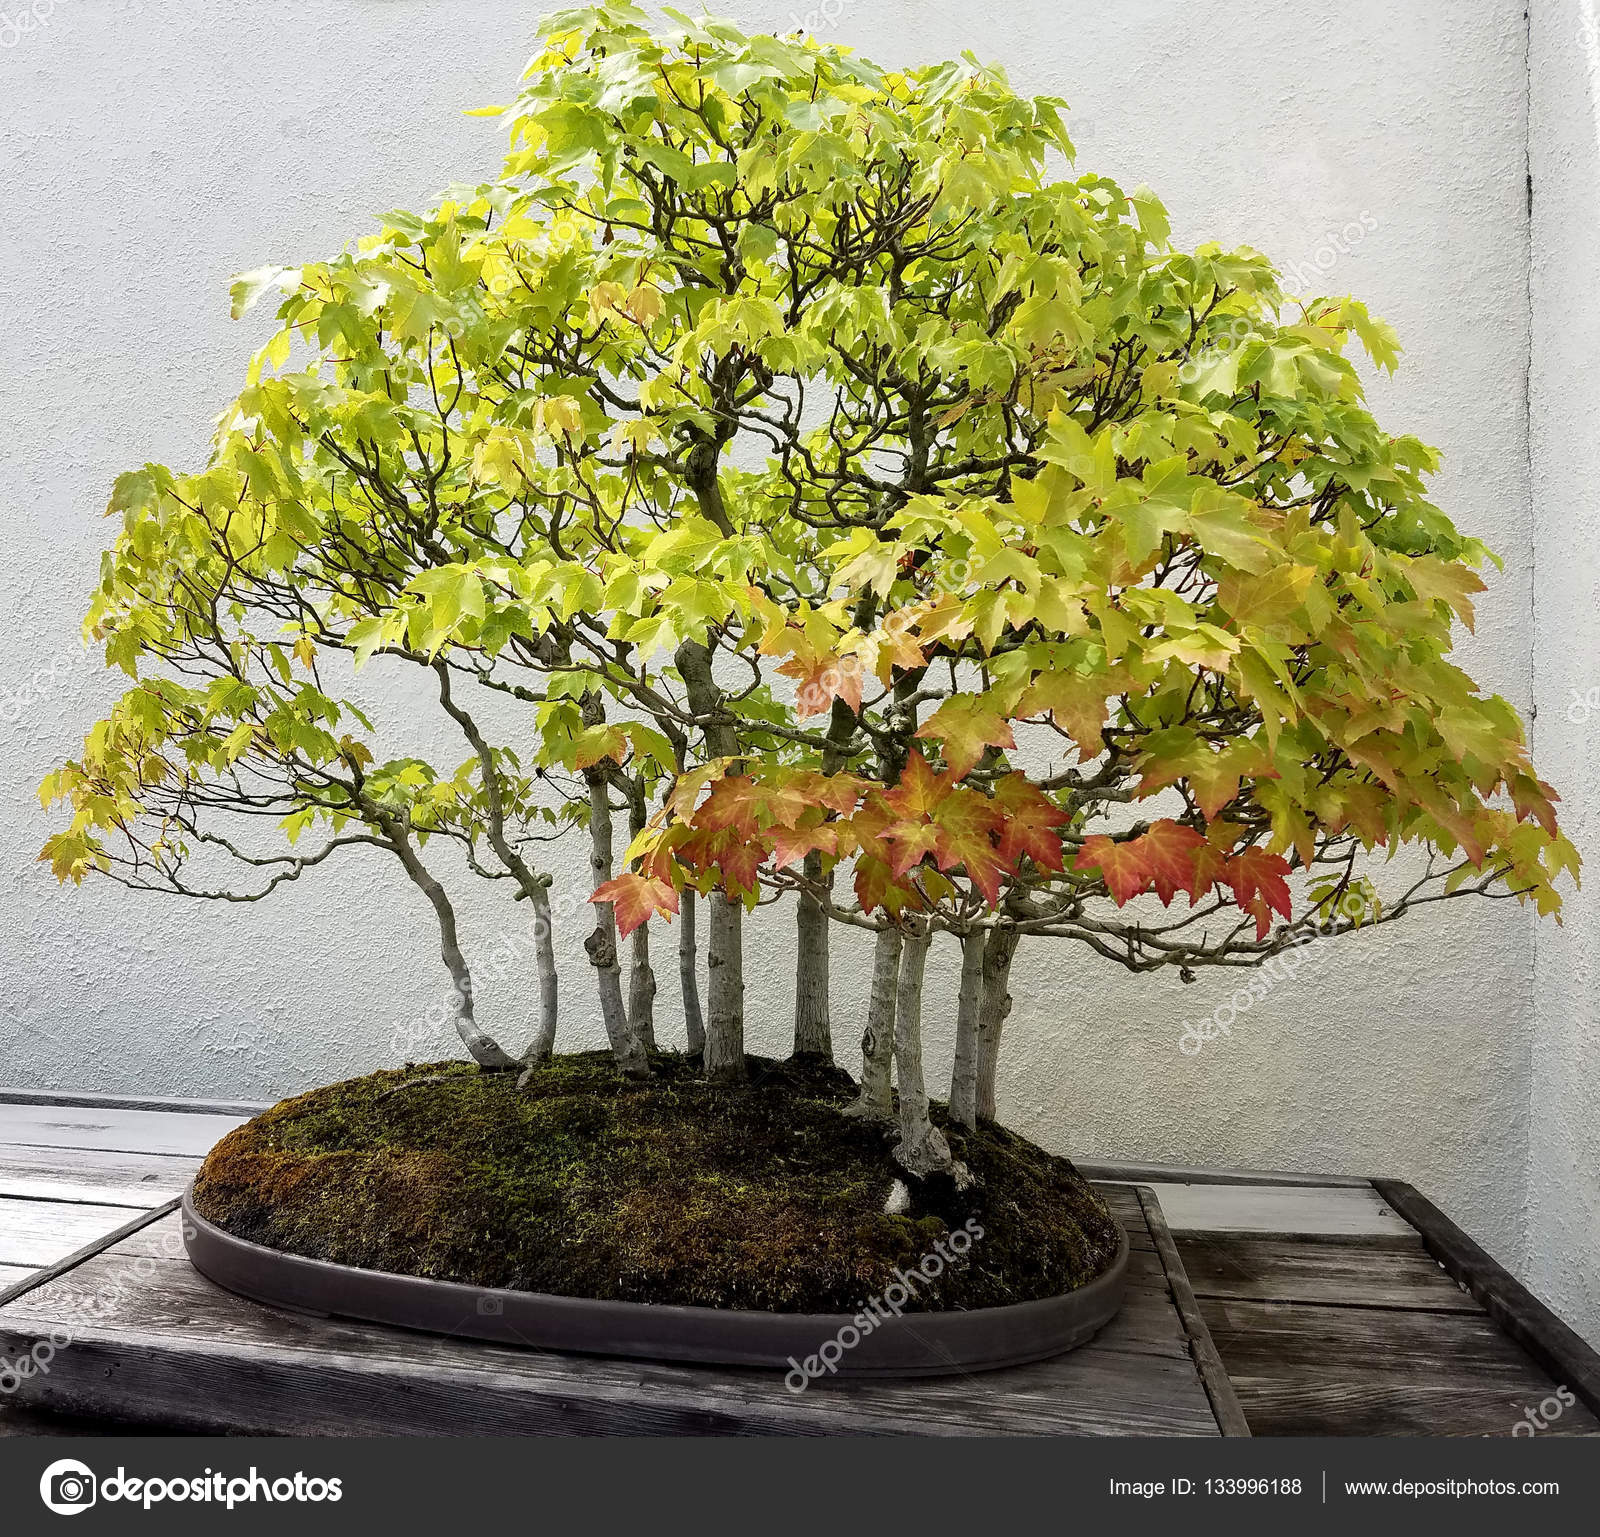 Bonsai Maple Trees Stock Photo 3000ad 133996188 Wiring Seedlings And Penjing Landscape With Miniature Deciduous In A Tray By